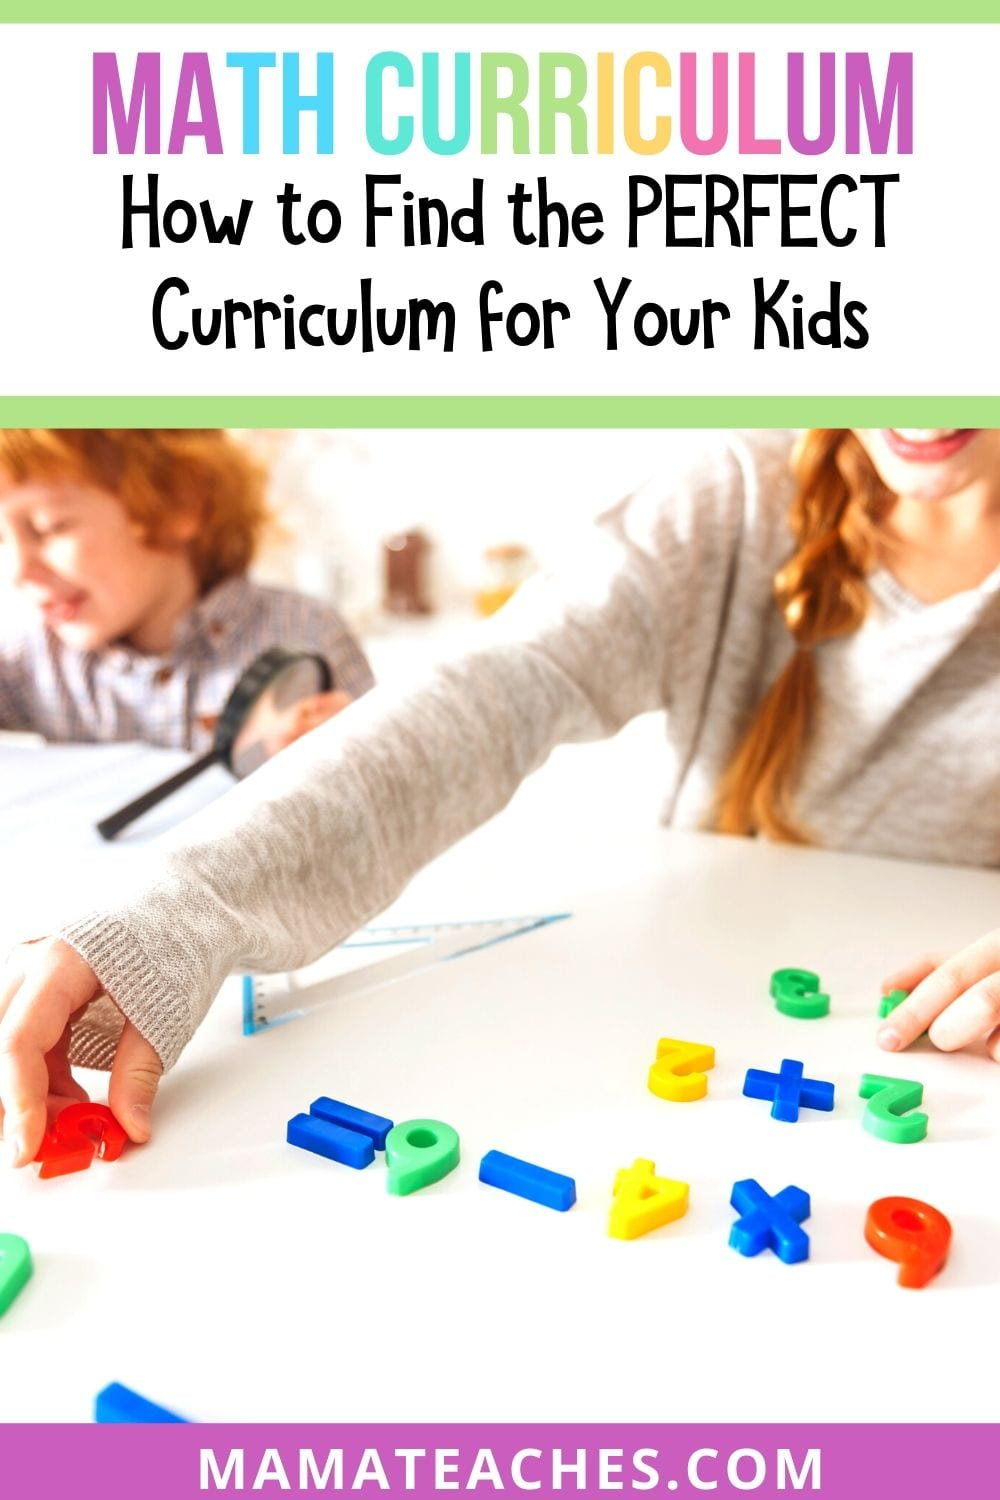 How to Find the Perfect Math Curriculum for Your Kids